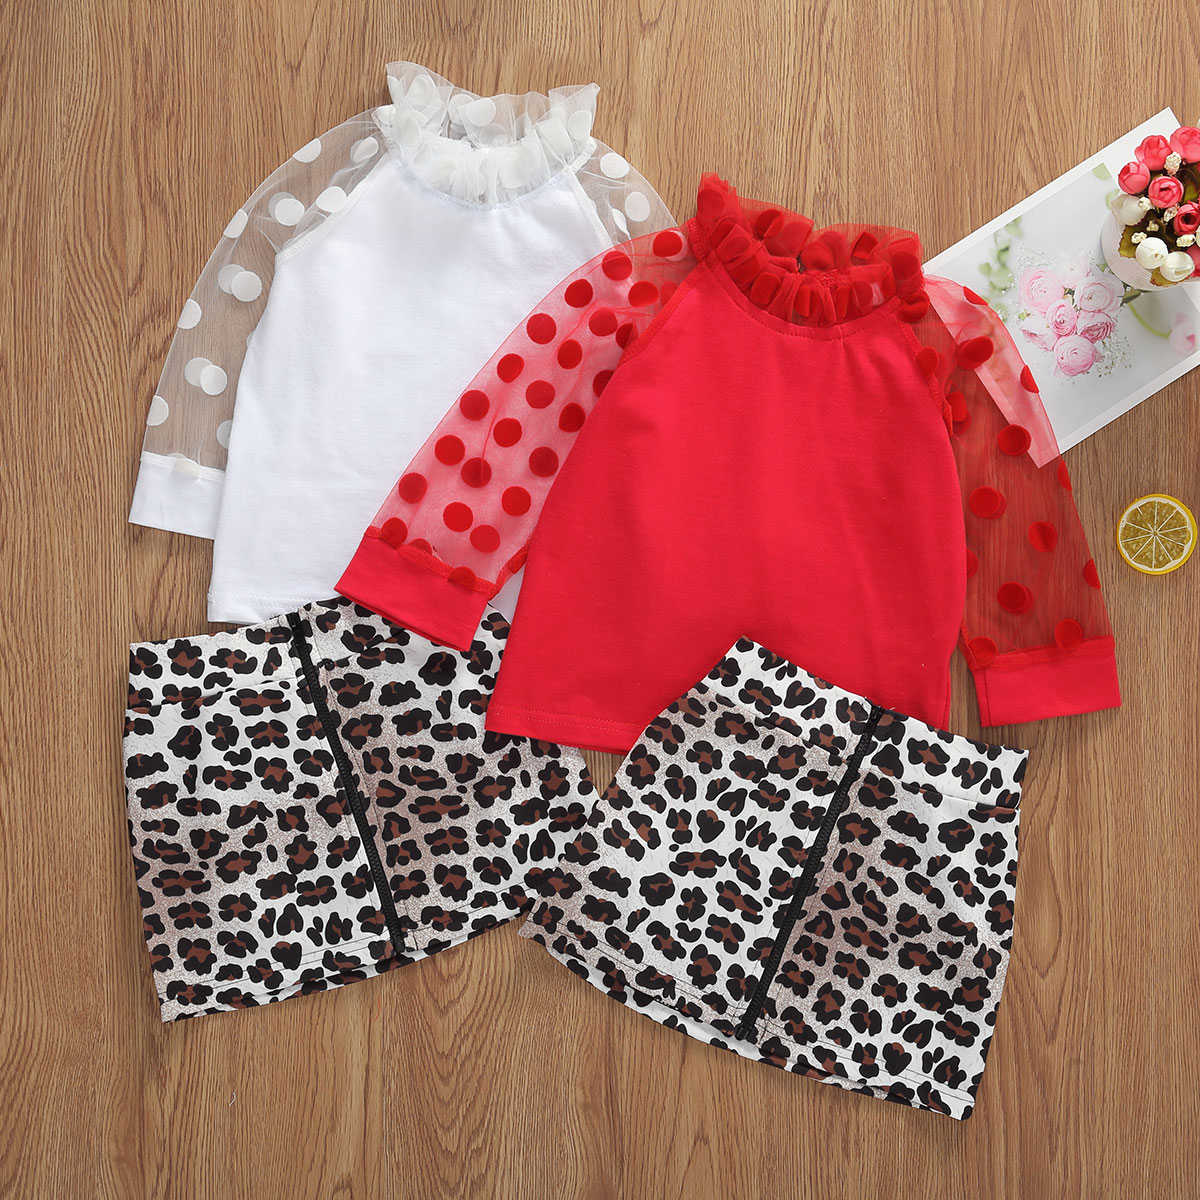 1-6Y Fashion Baby Girls Clothes Sets Polka Dot Long Sleeve Lace T Shirts Tops+Leopard Print A-Line Skirts